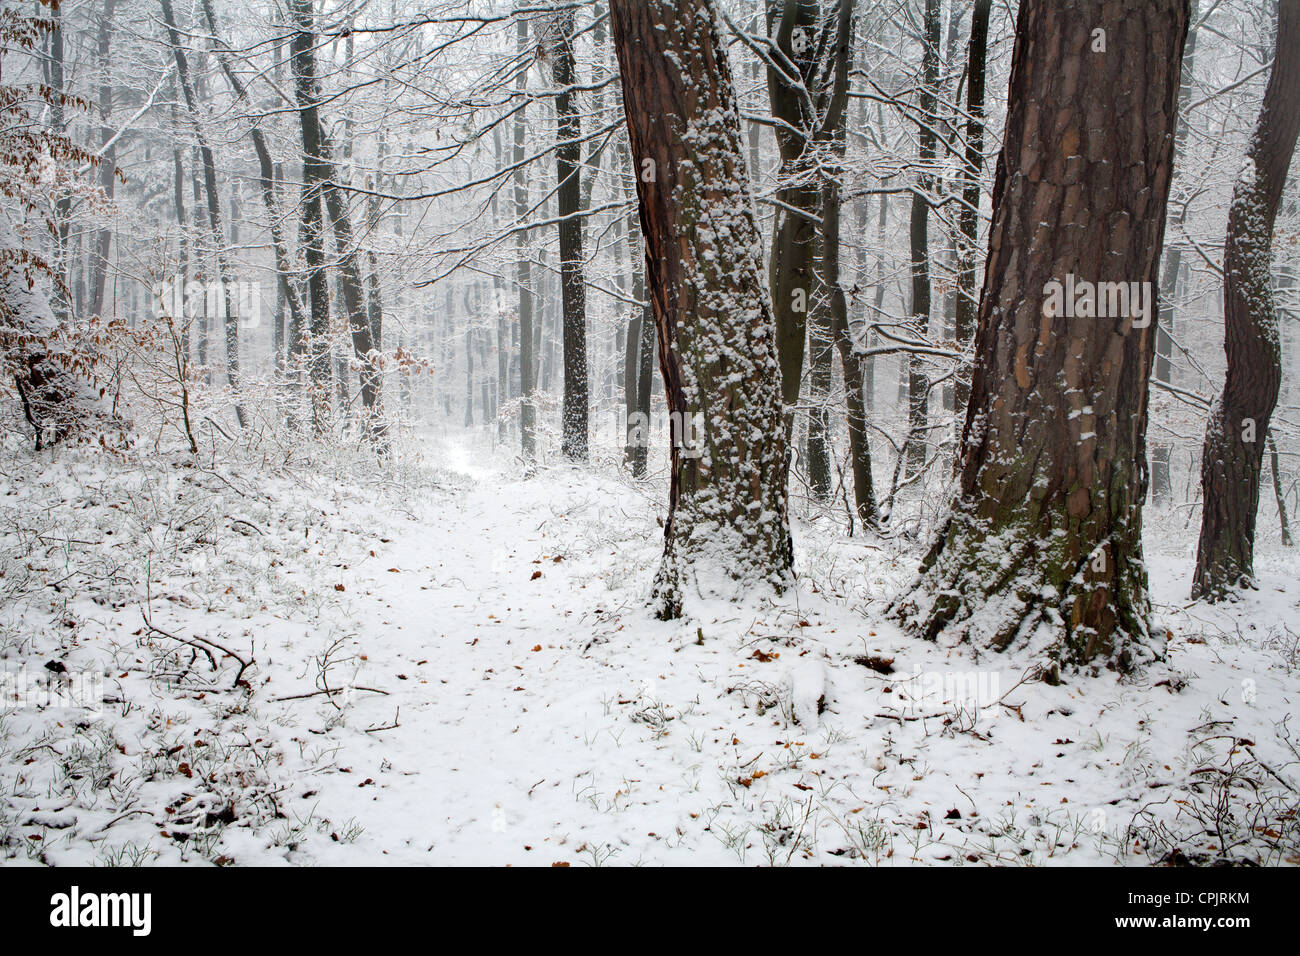 after snowfall in forest - Stock Image